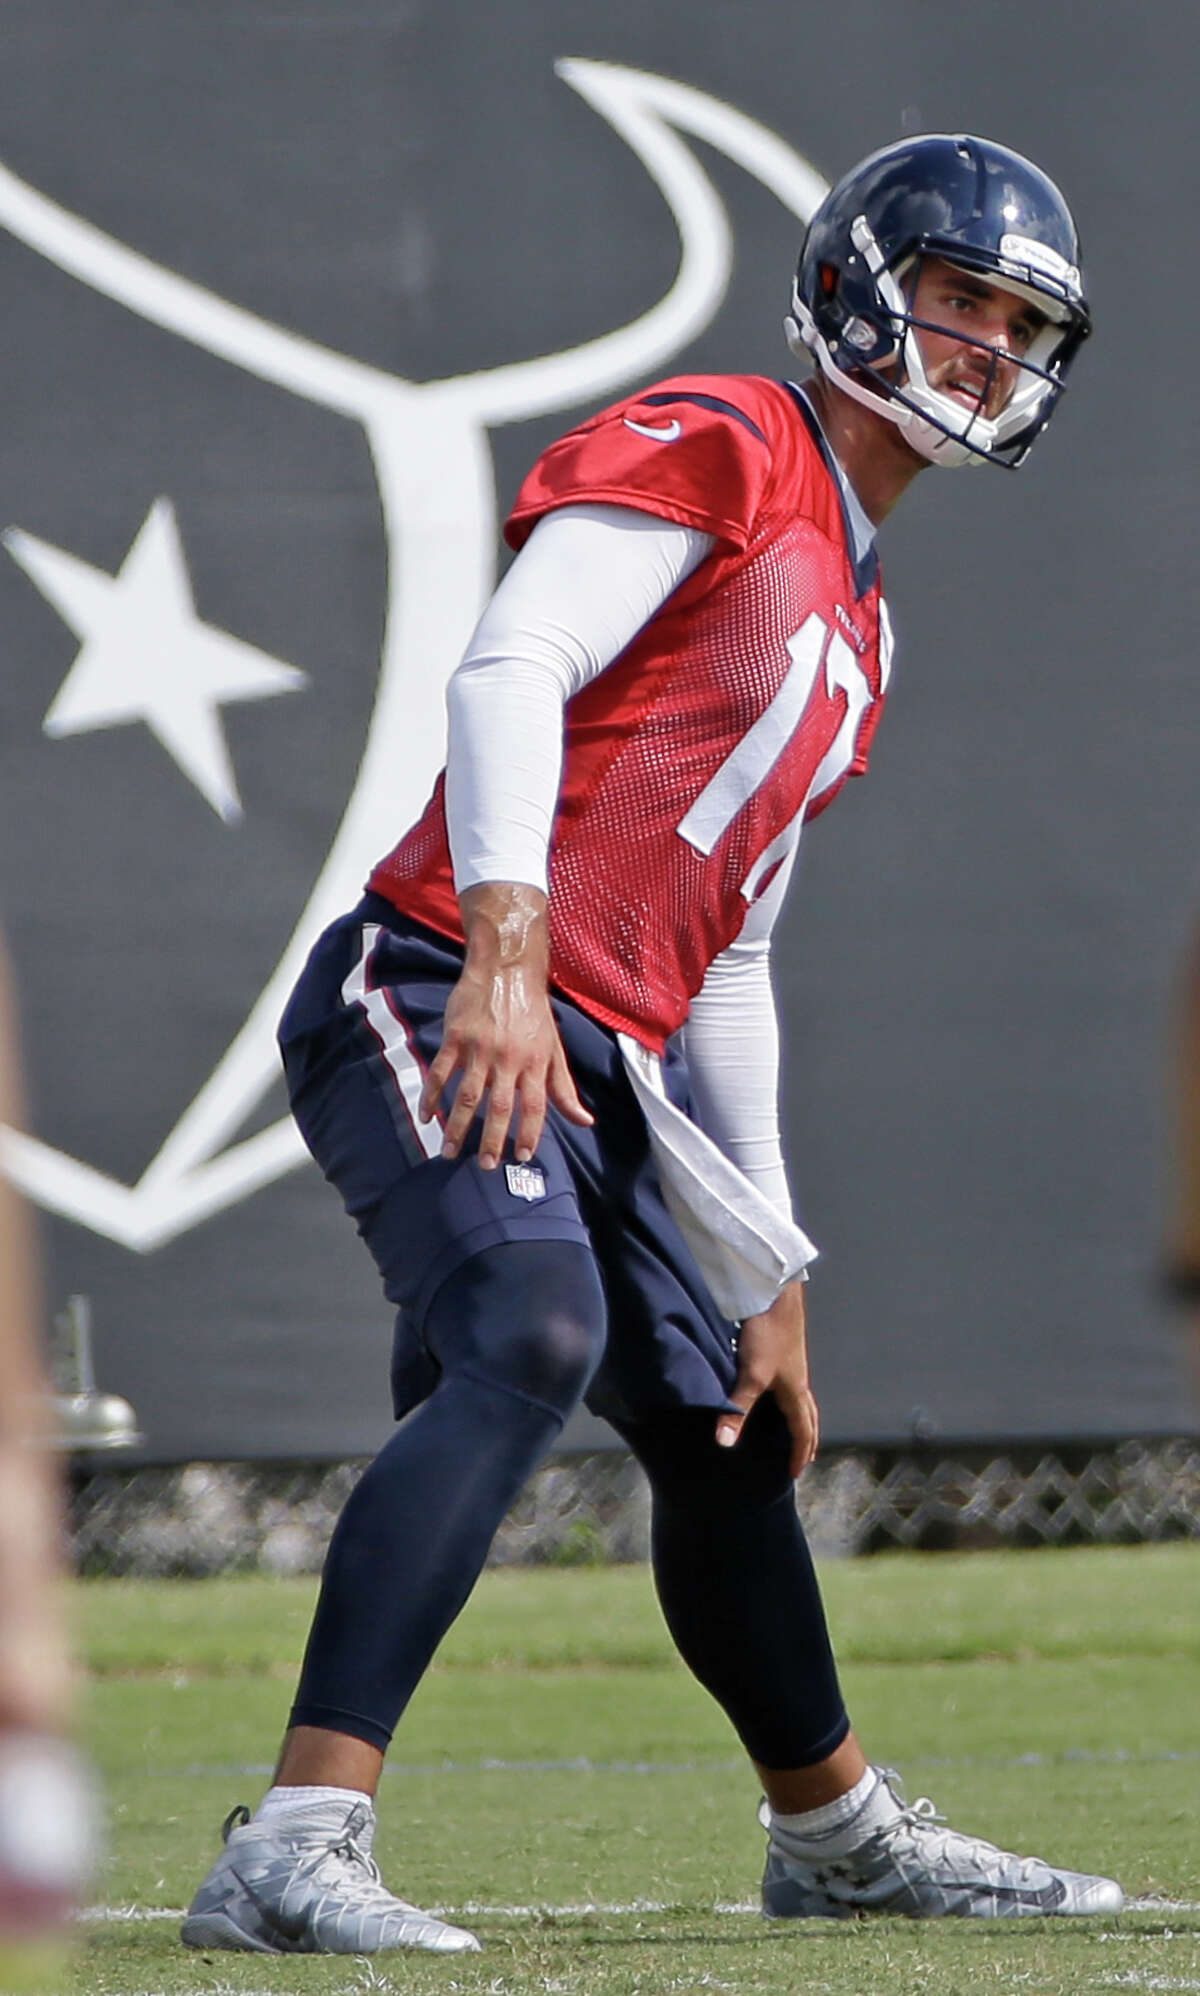 Signed to a four-year, $72 million contract in March as the replacement for Brian Hoyer, Osweiler has proven to be a quick study so far in terms of absorbing knowledge about a complex playbook authored by O'Brien and offensive coordinator George Godsey. Godsey has been building chemistry with Hopkins and the other receivers and doing a nice job of fitting into the locker room. The real litmus tests will come in the regular season when the towering quarterback faces blitzes and disguised coverages. The book on Osweiler is still being written because he only had seven career starts for the Denver Broncos, winning five of them last season for the Super Bowl champions before being replaced by Peyton Manning. Given the opportunity to build his own legacy with a new team, Osweiler is eager to prove himself.